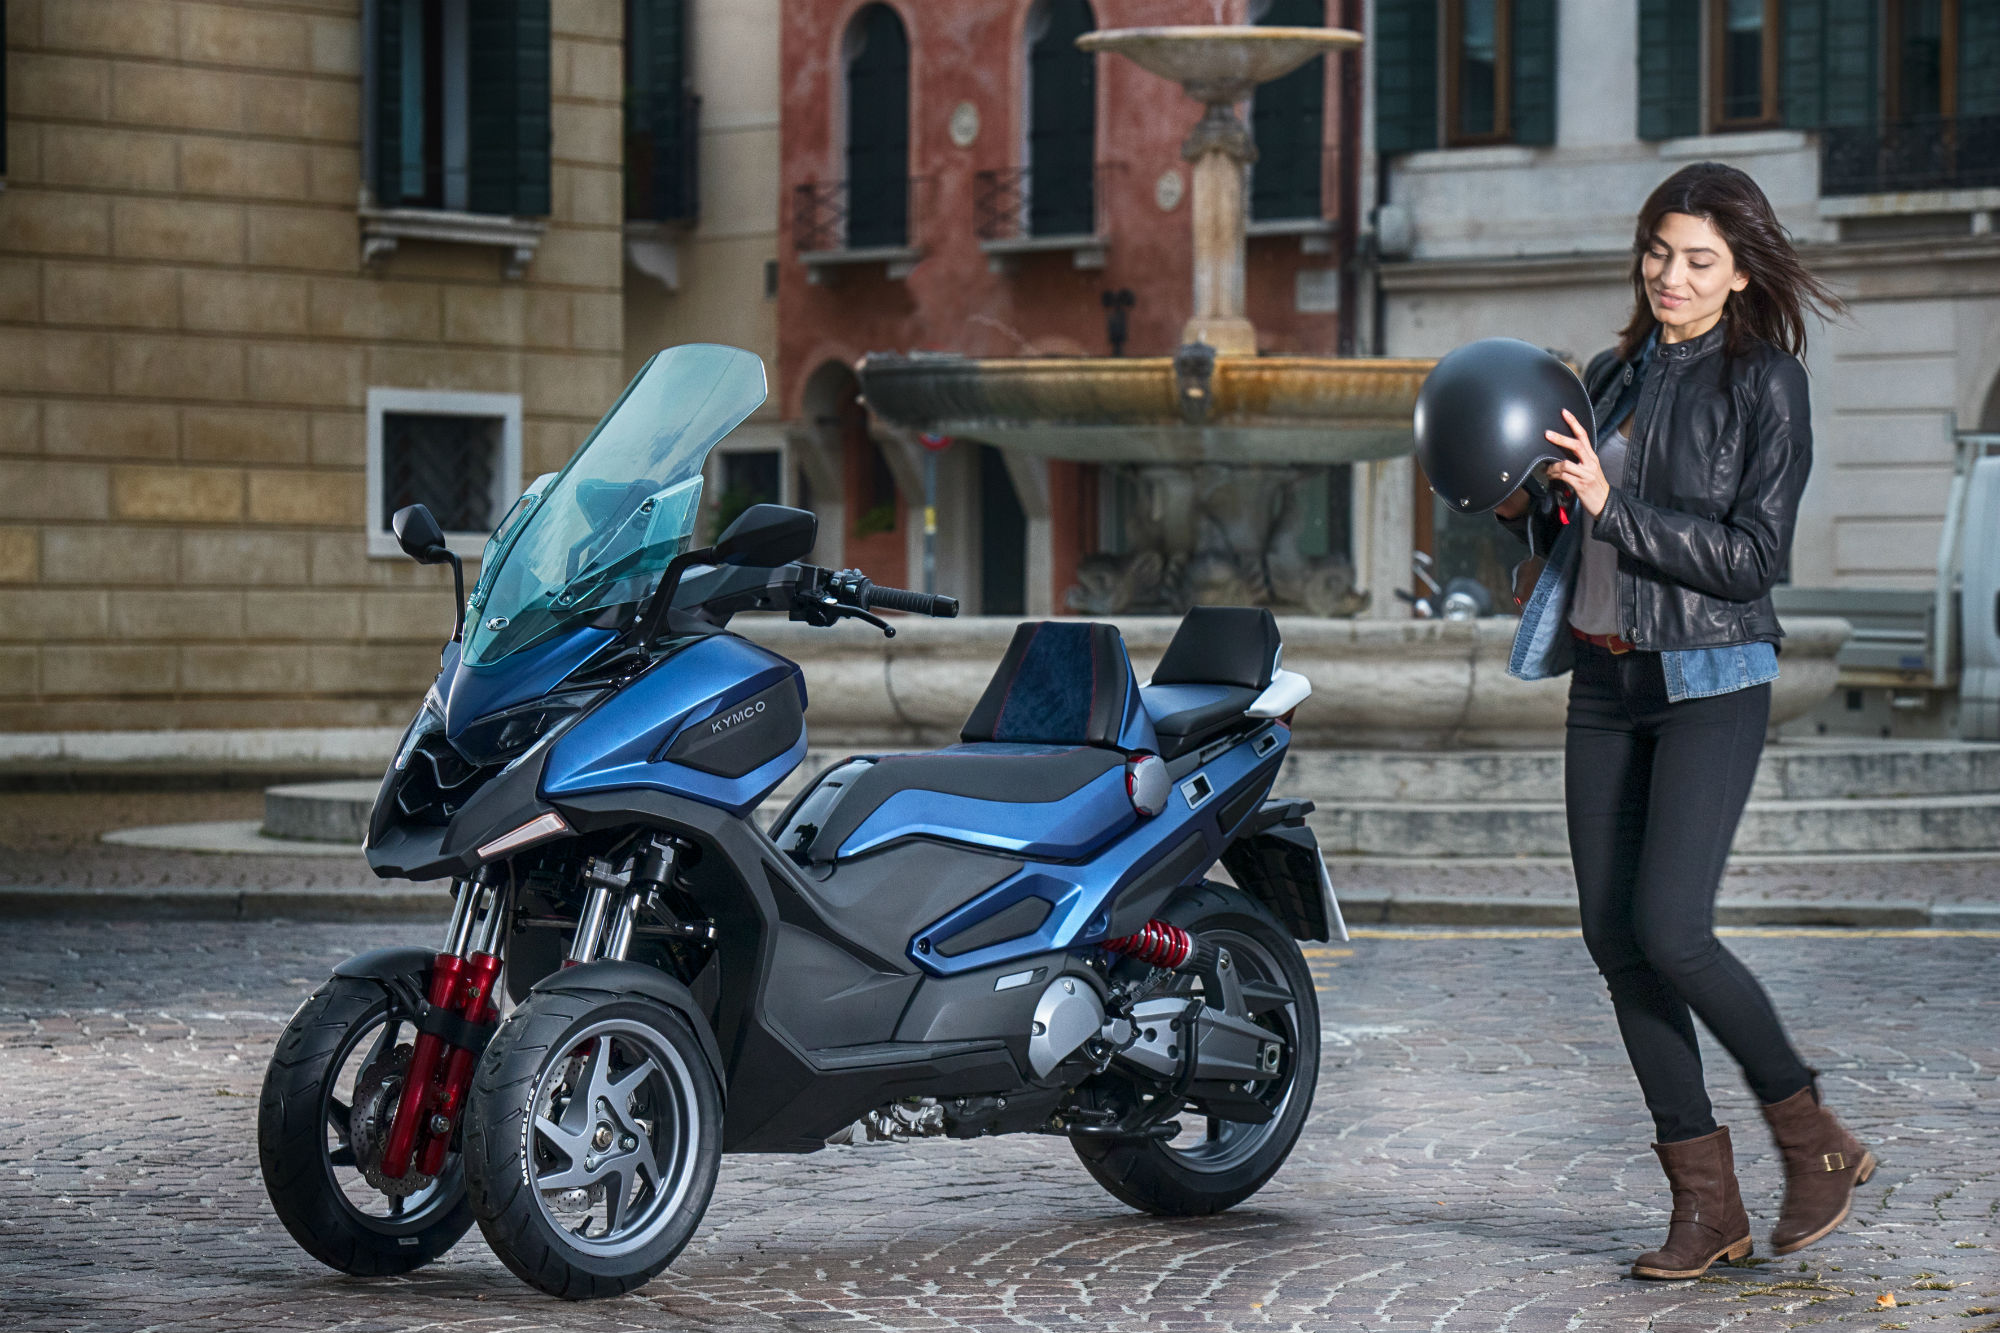 Kymco reveals two-and-three-wheel 'Adventure' scooter concepts at Eicma